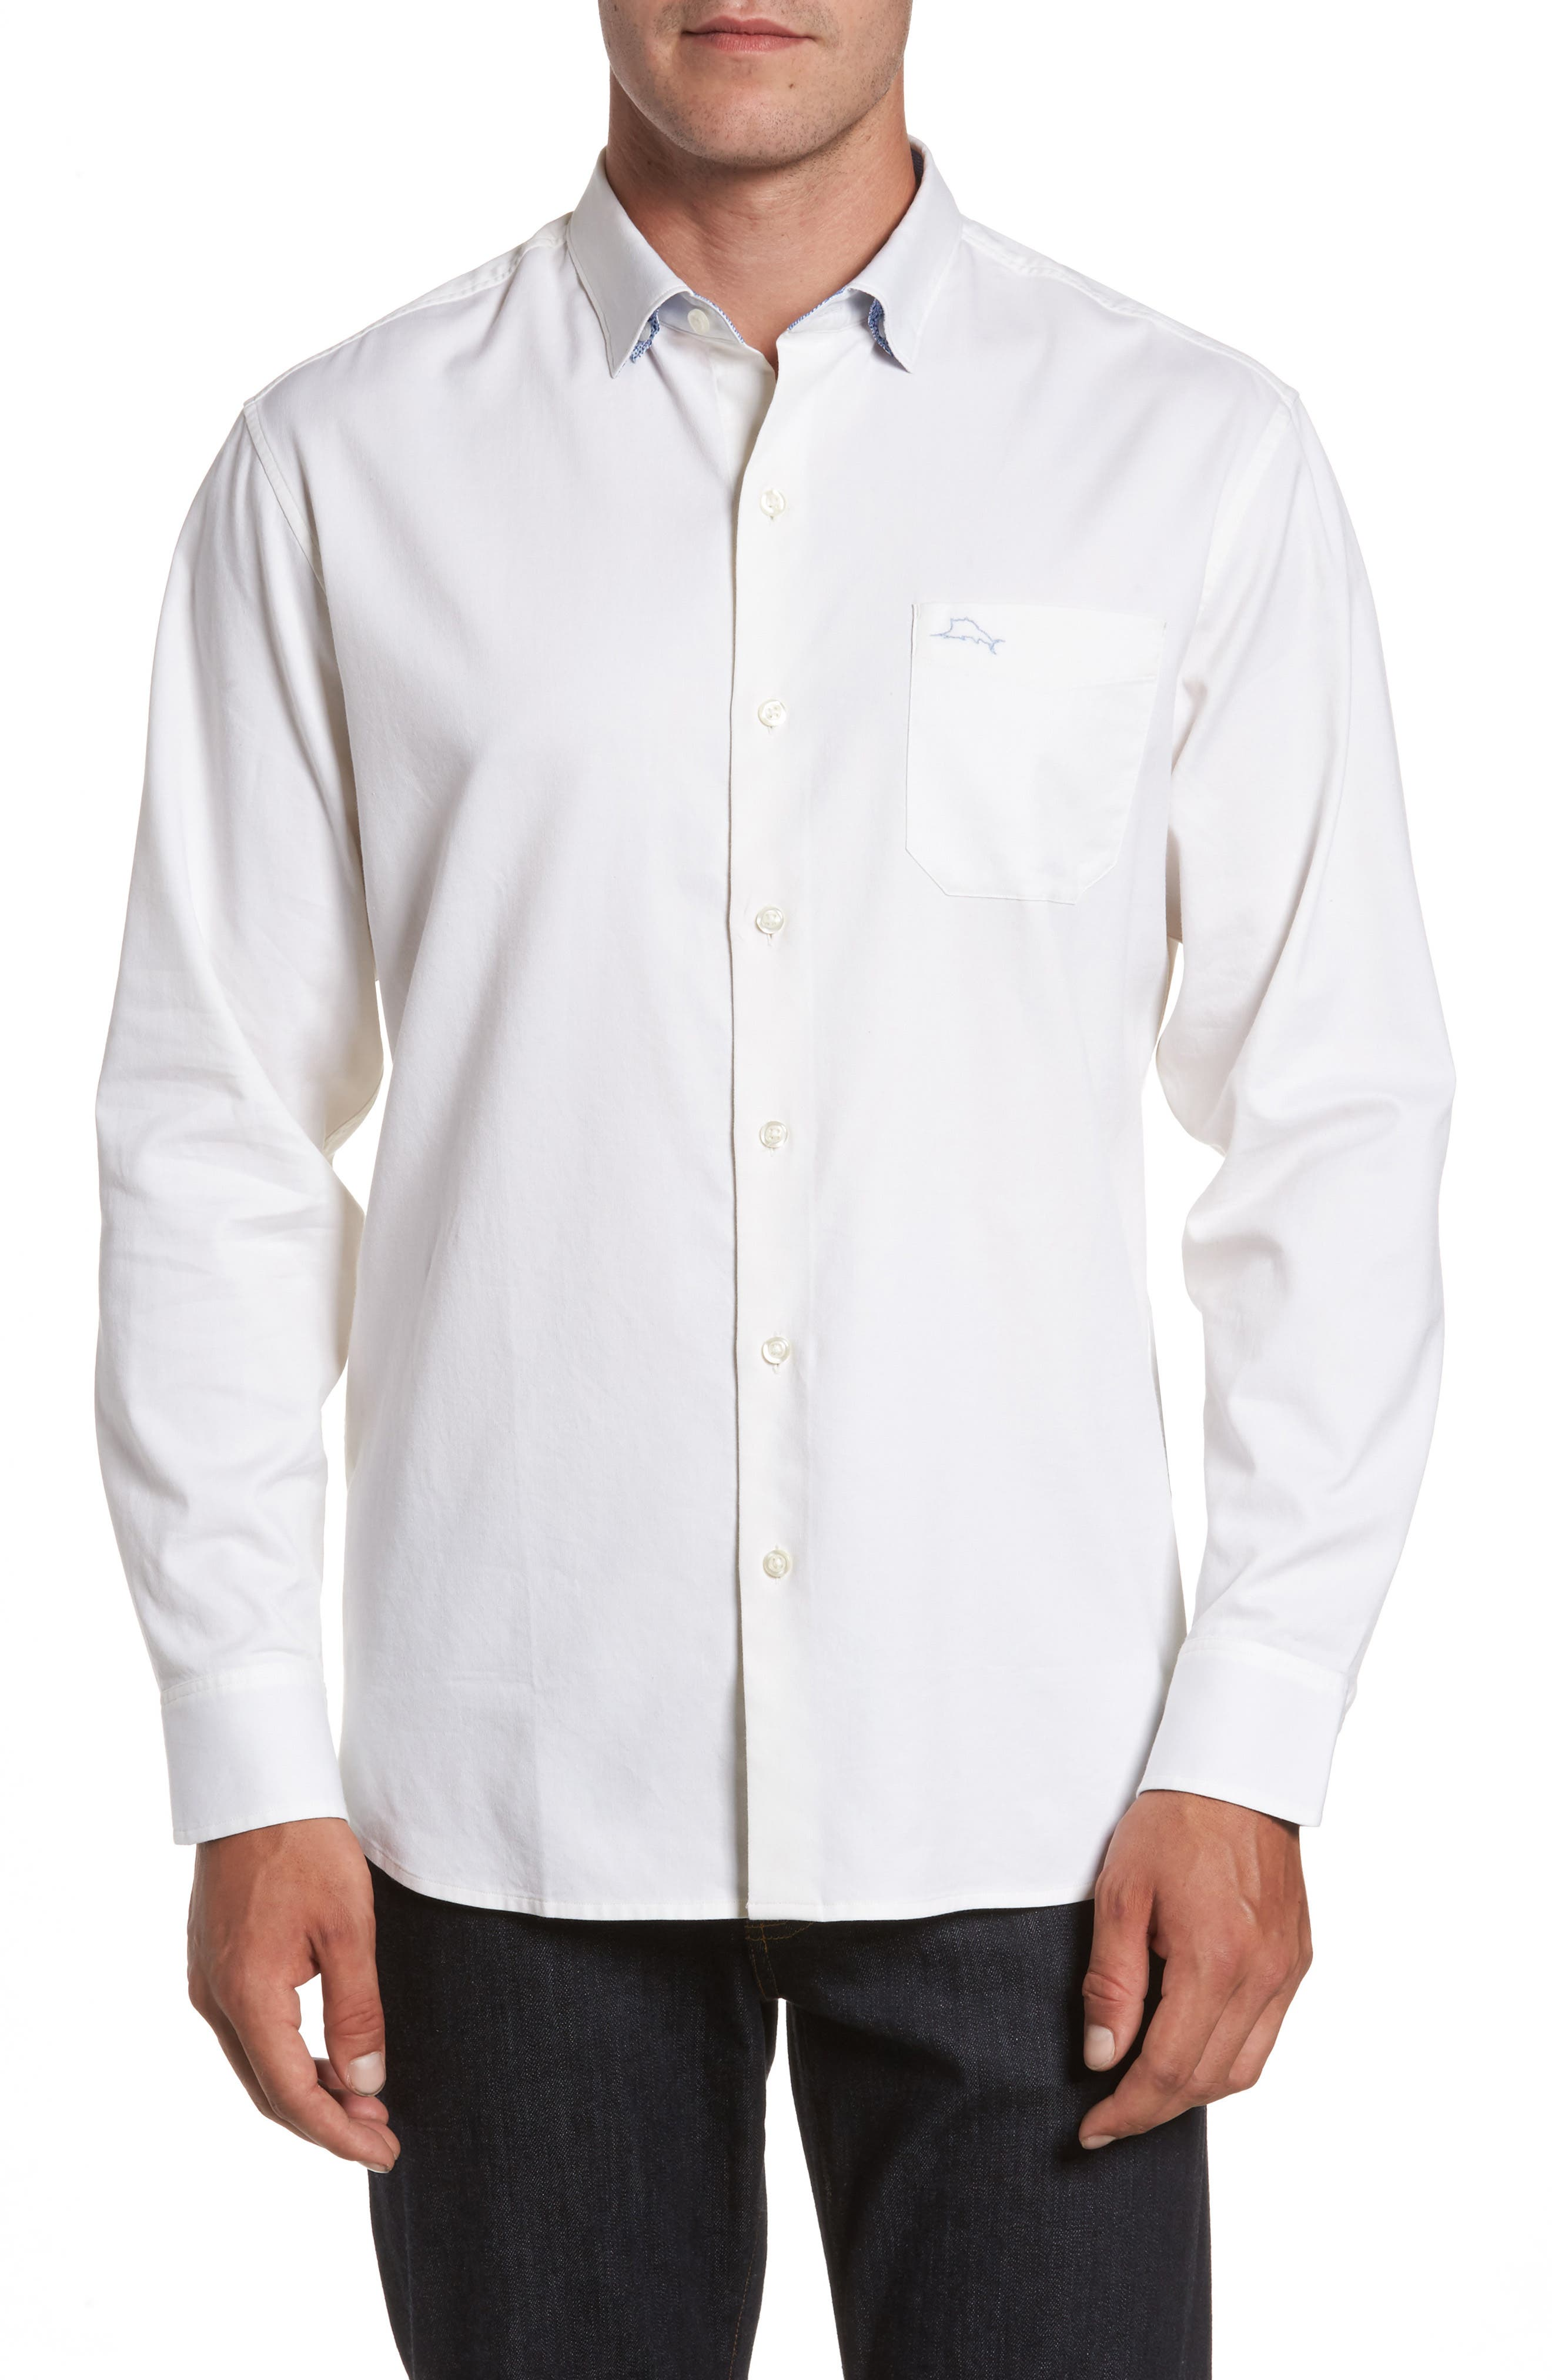 Oasis Twill Sport Shirt,                         Main,                         color, WHITE